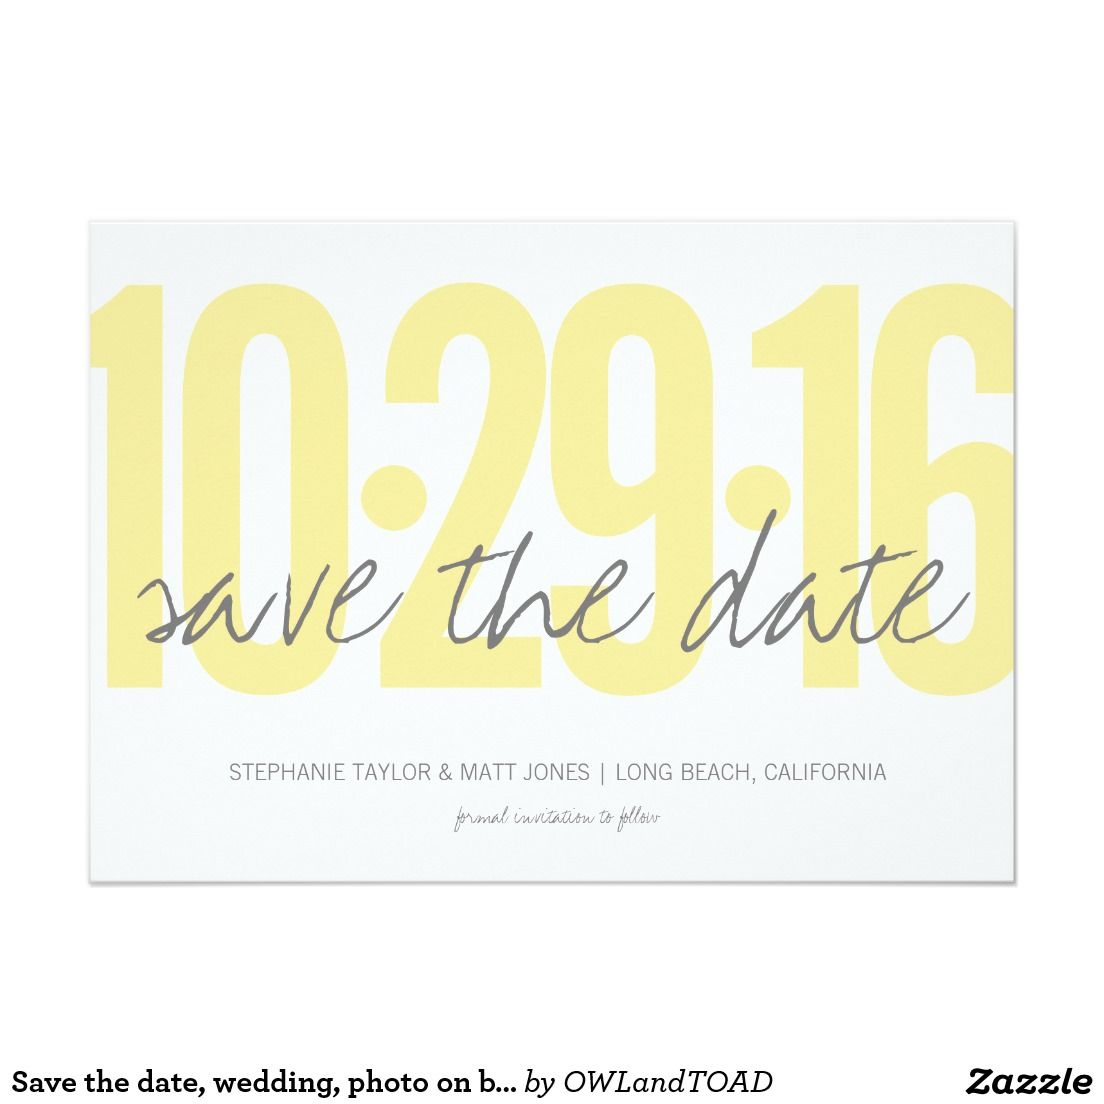 Save The Date Wedding Photo On Back Card Yellow Gray Weddings